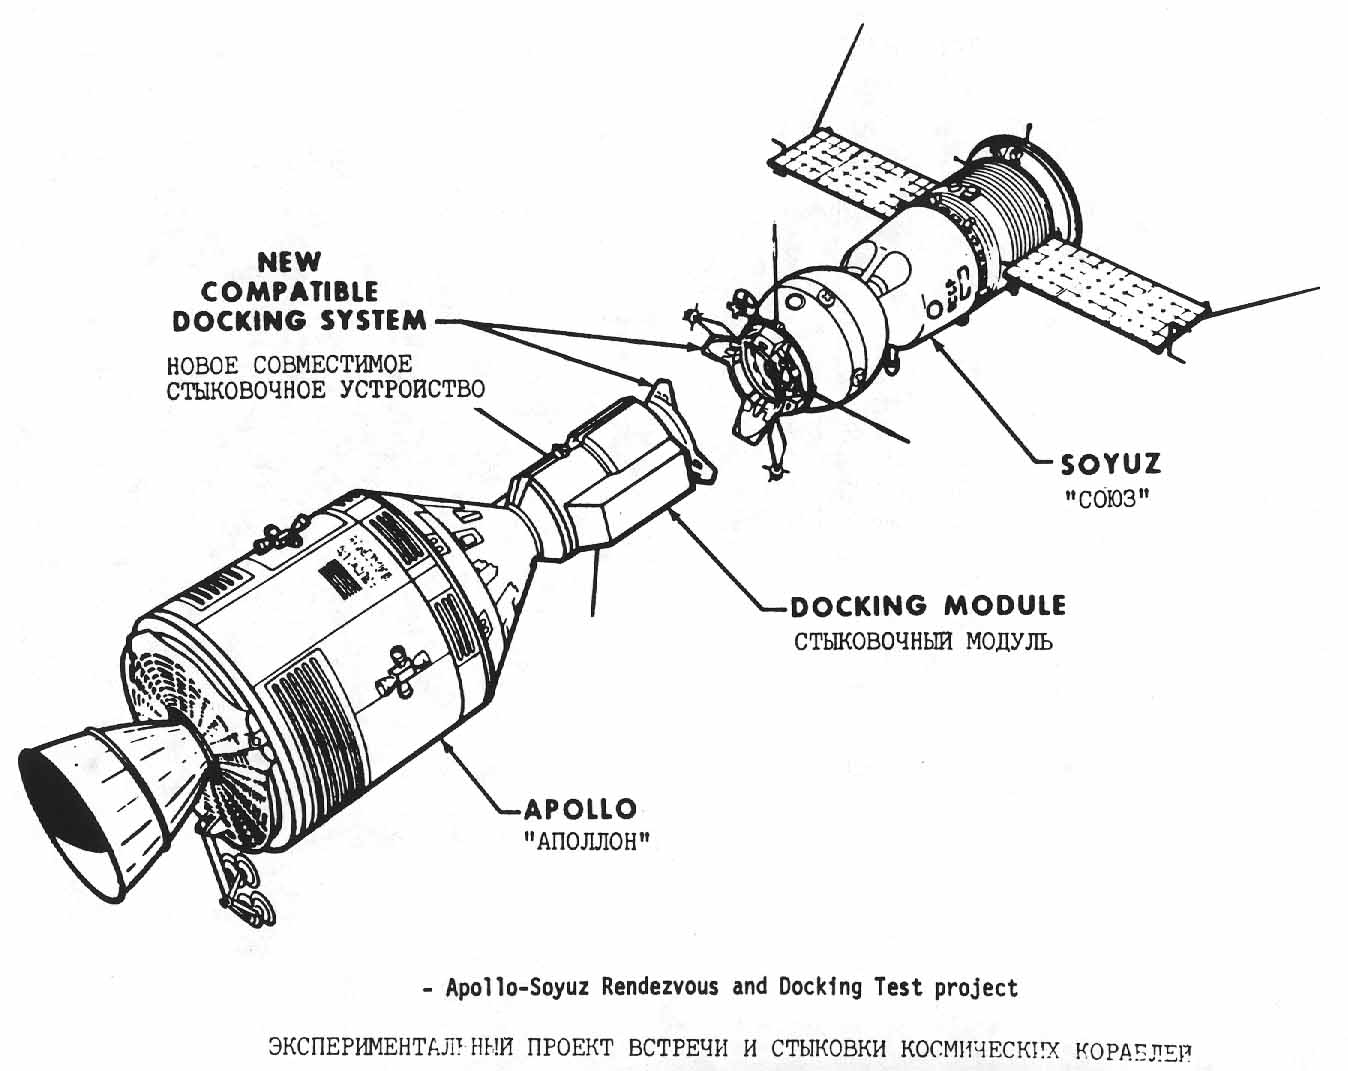 component illustration of the Apollo-Soyuz Docking Module in service